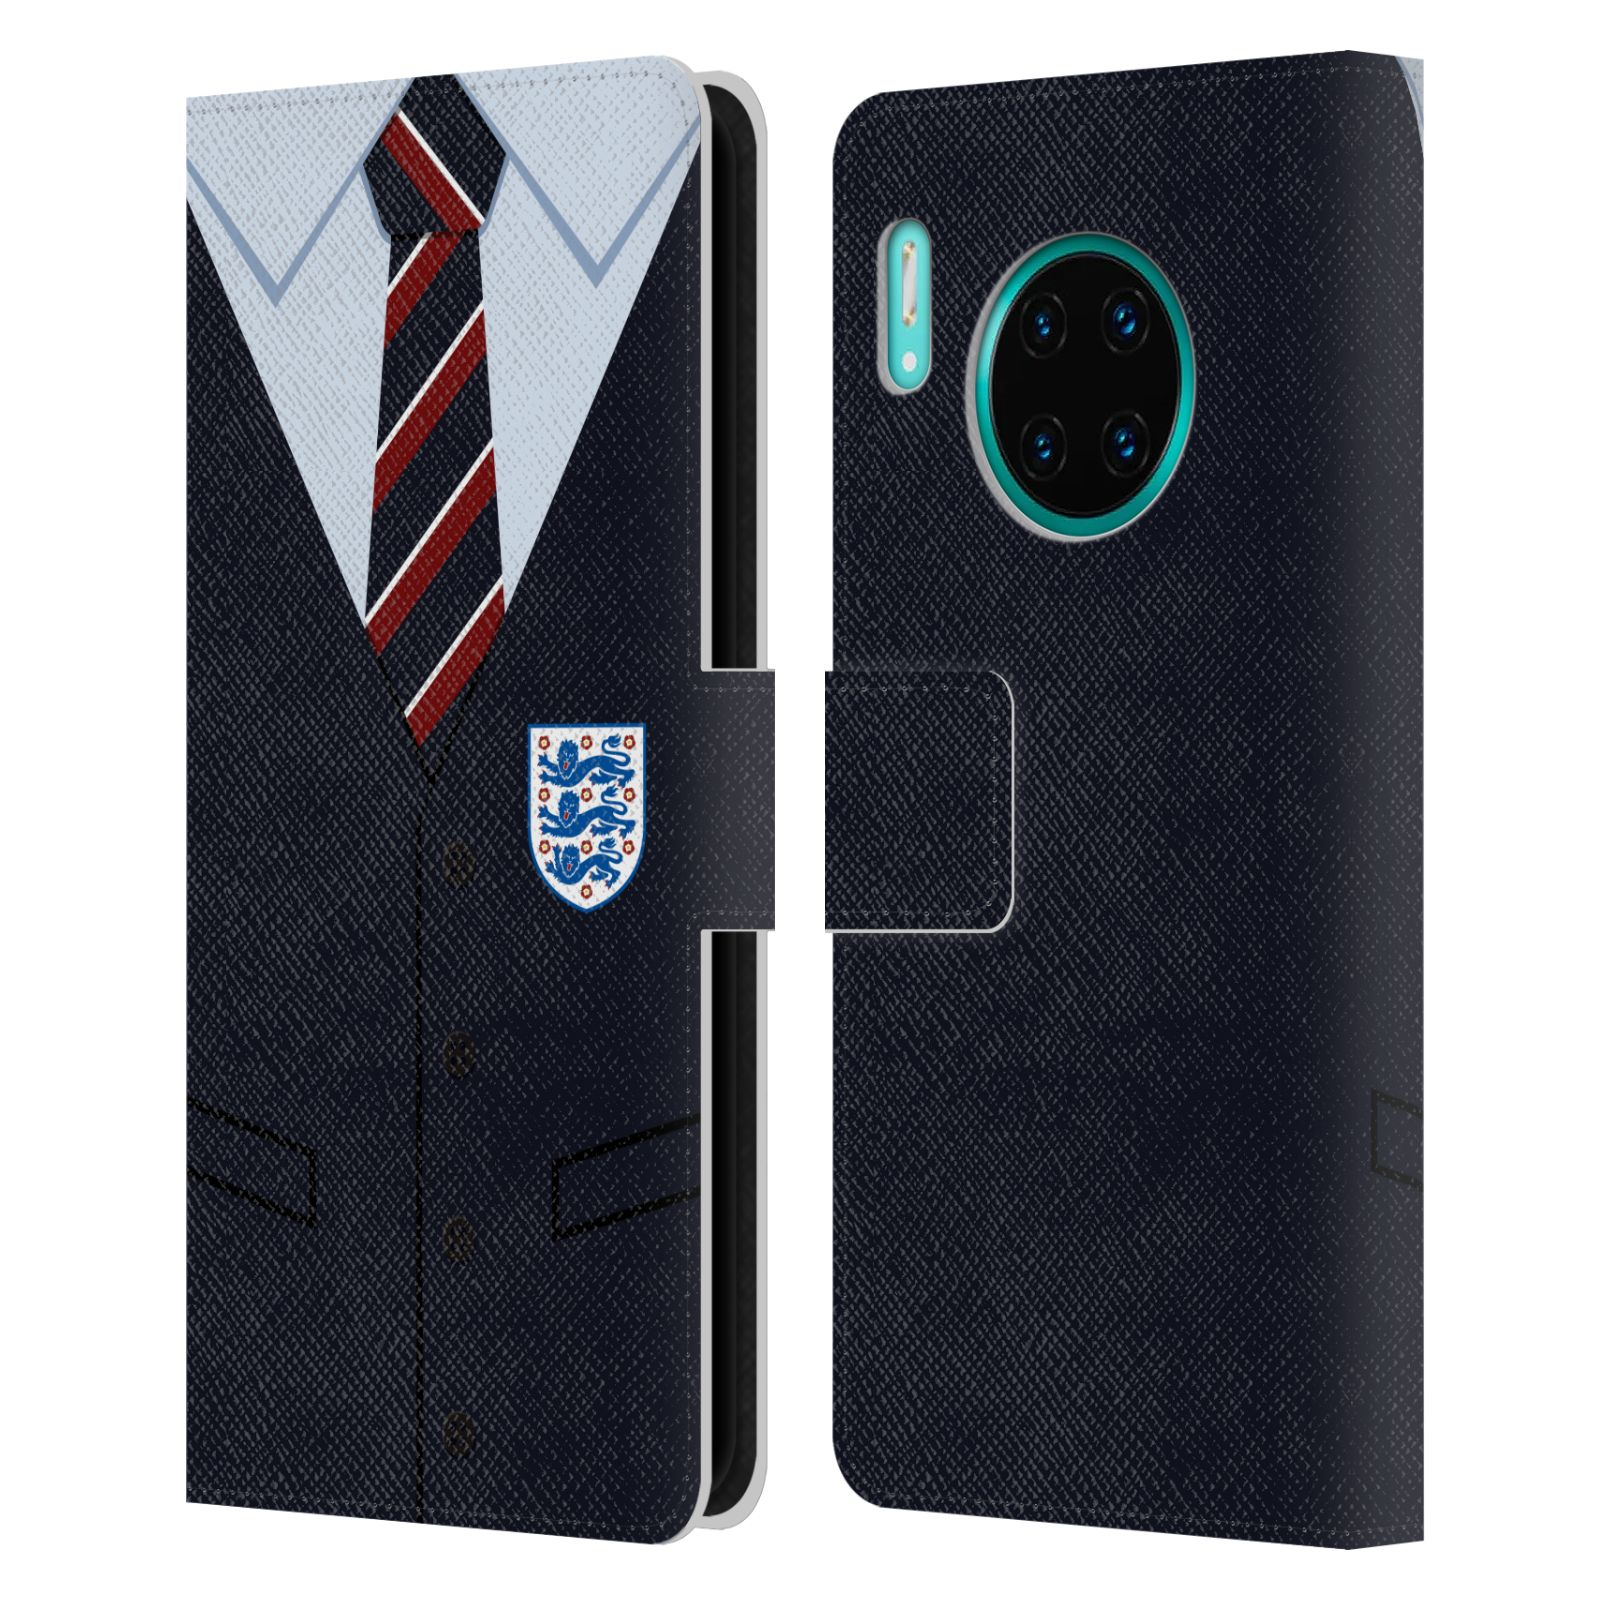 Official England National Football Team 2018/19 Crest Southgate Waistcoat Leather Book Wallet Case For Huawei Mate 30 Pro / 5G